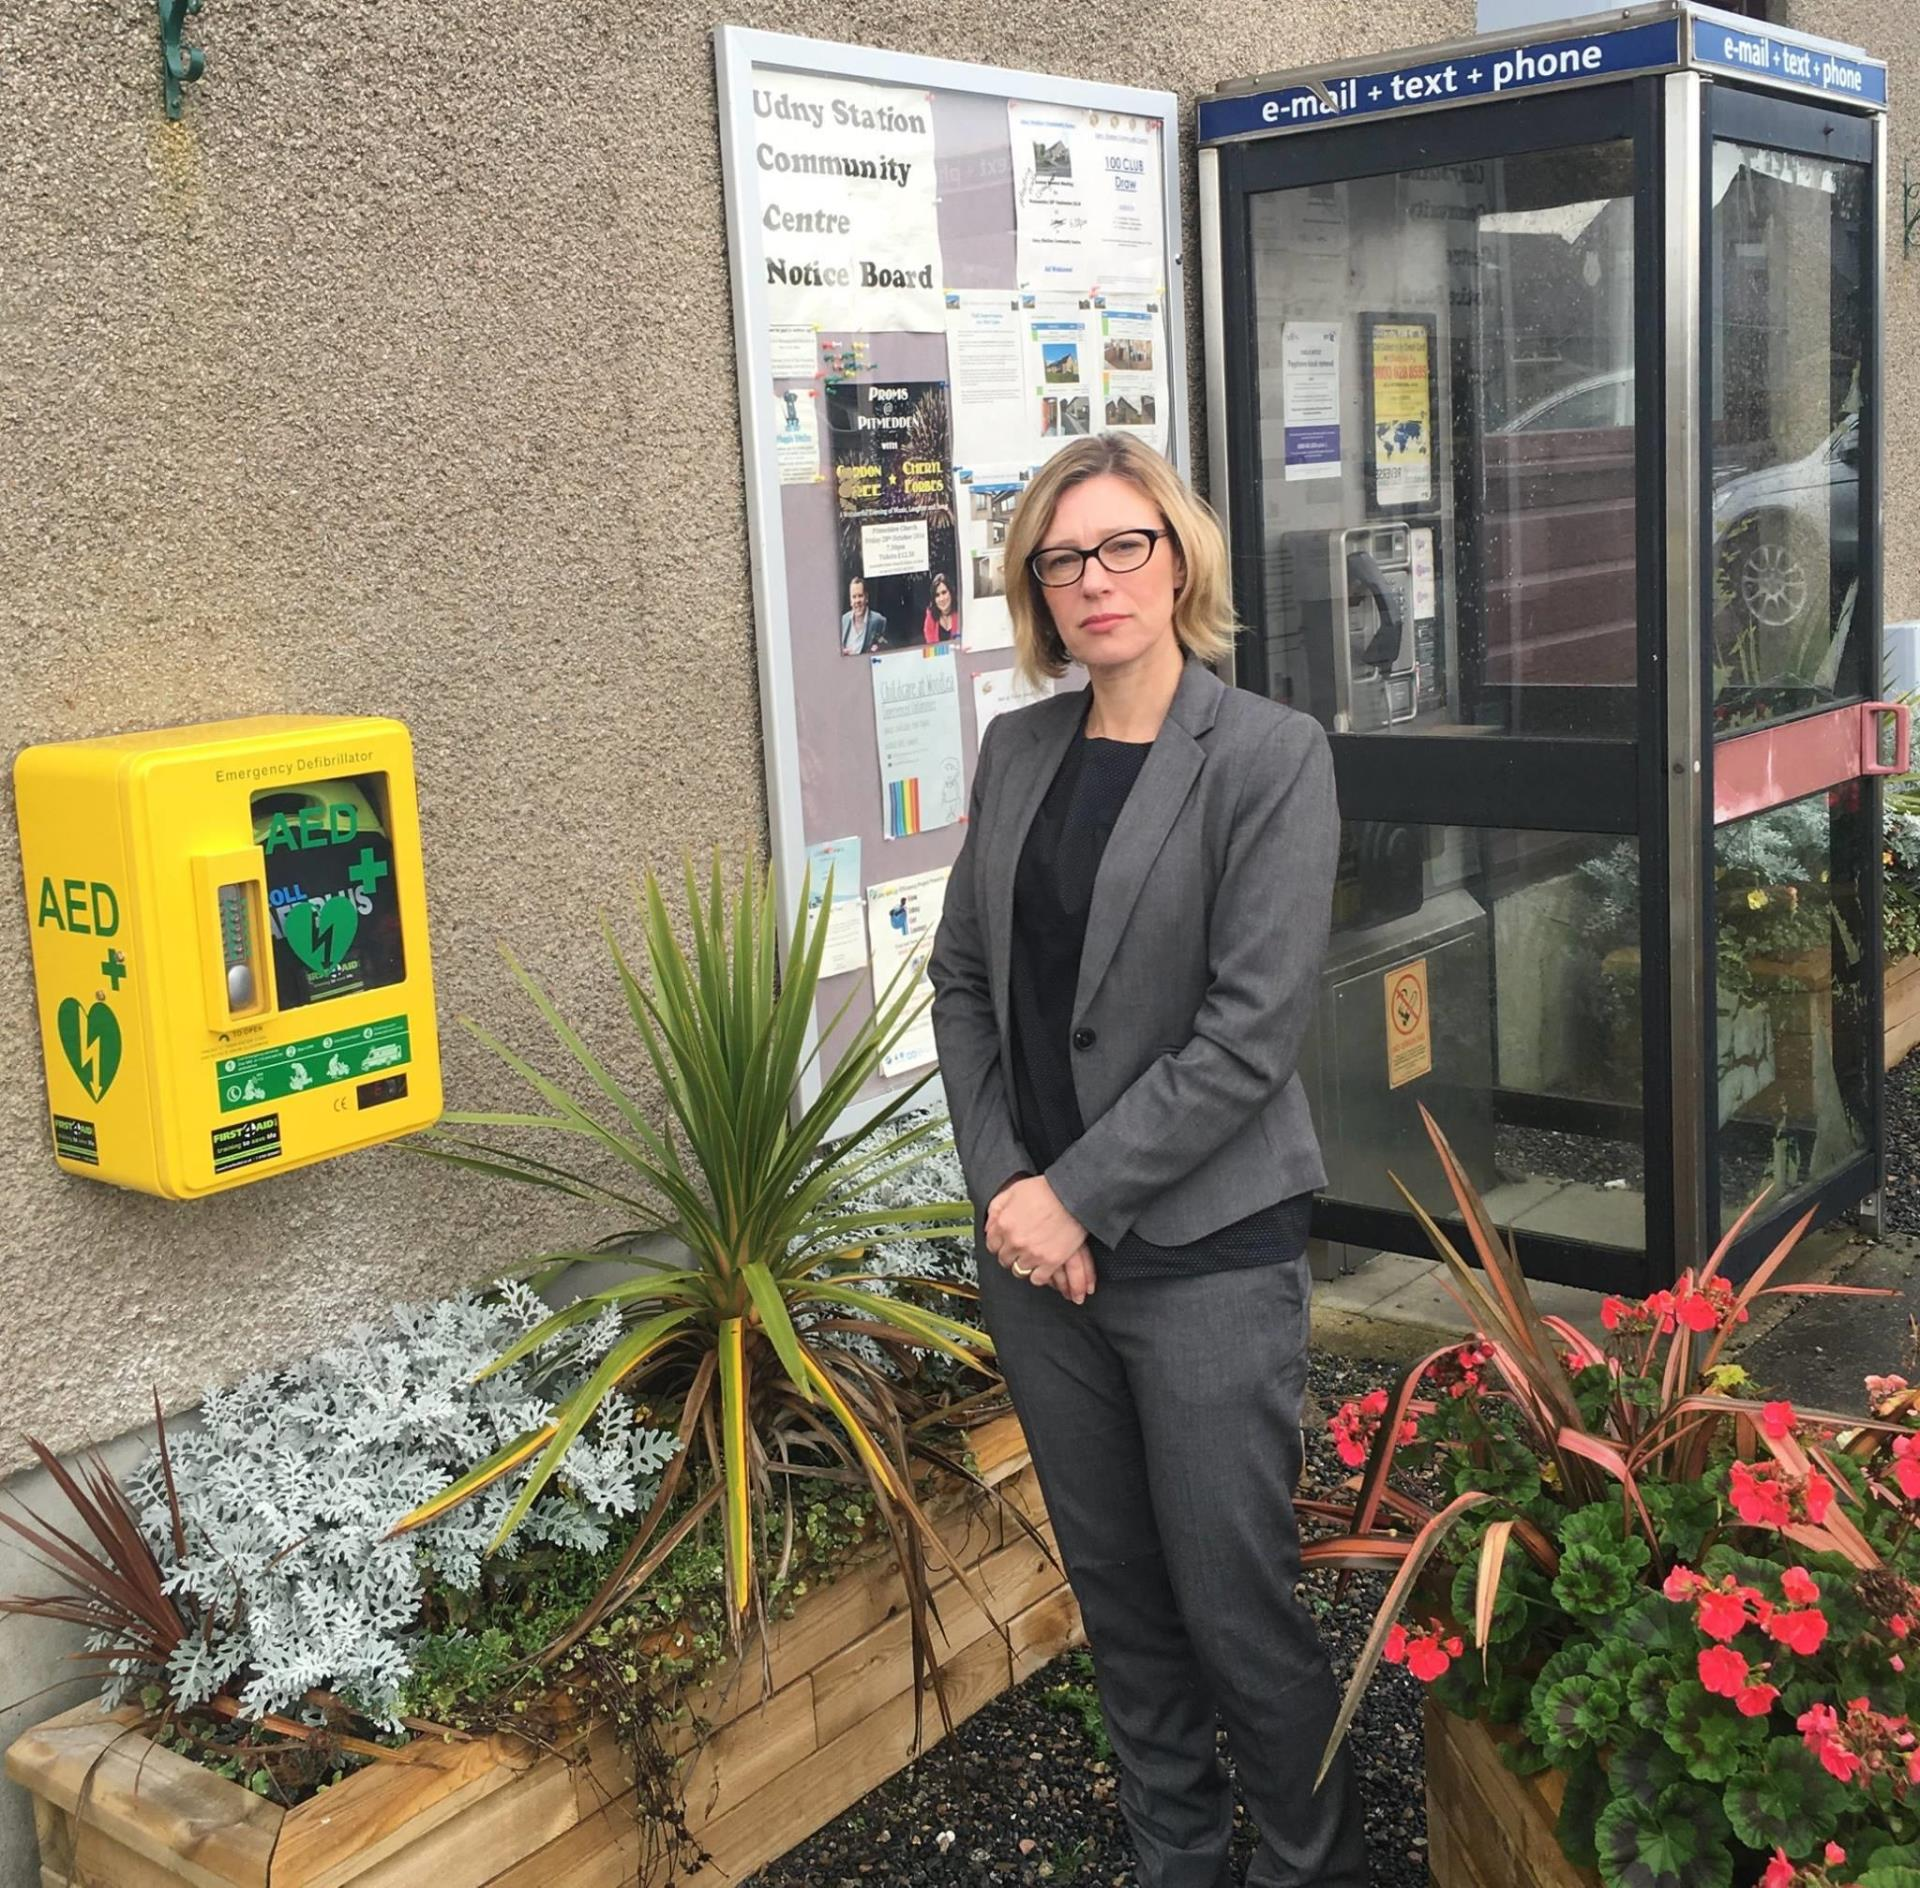 Gillian Martin has called on BT to rethink its plans for 24 phone boxes